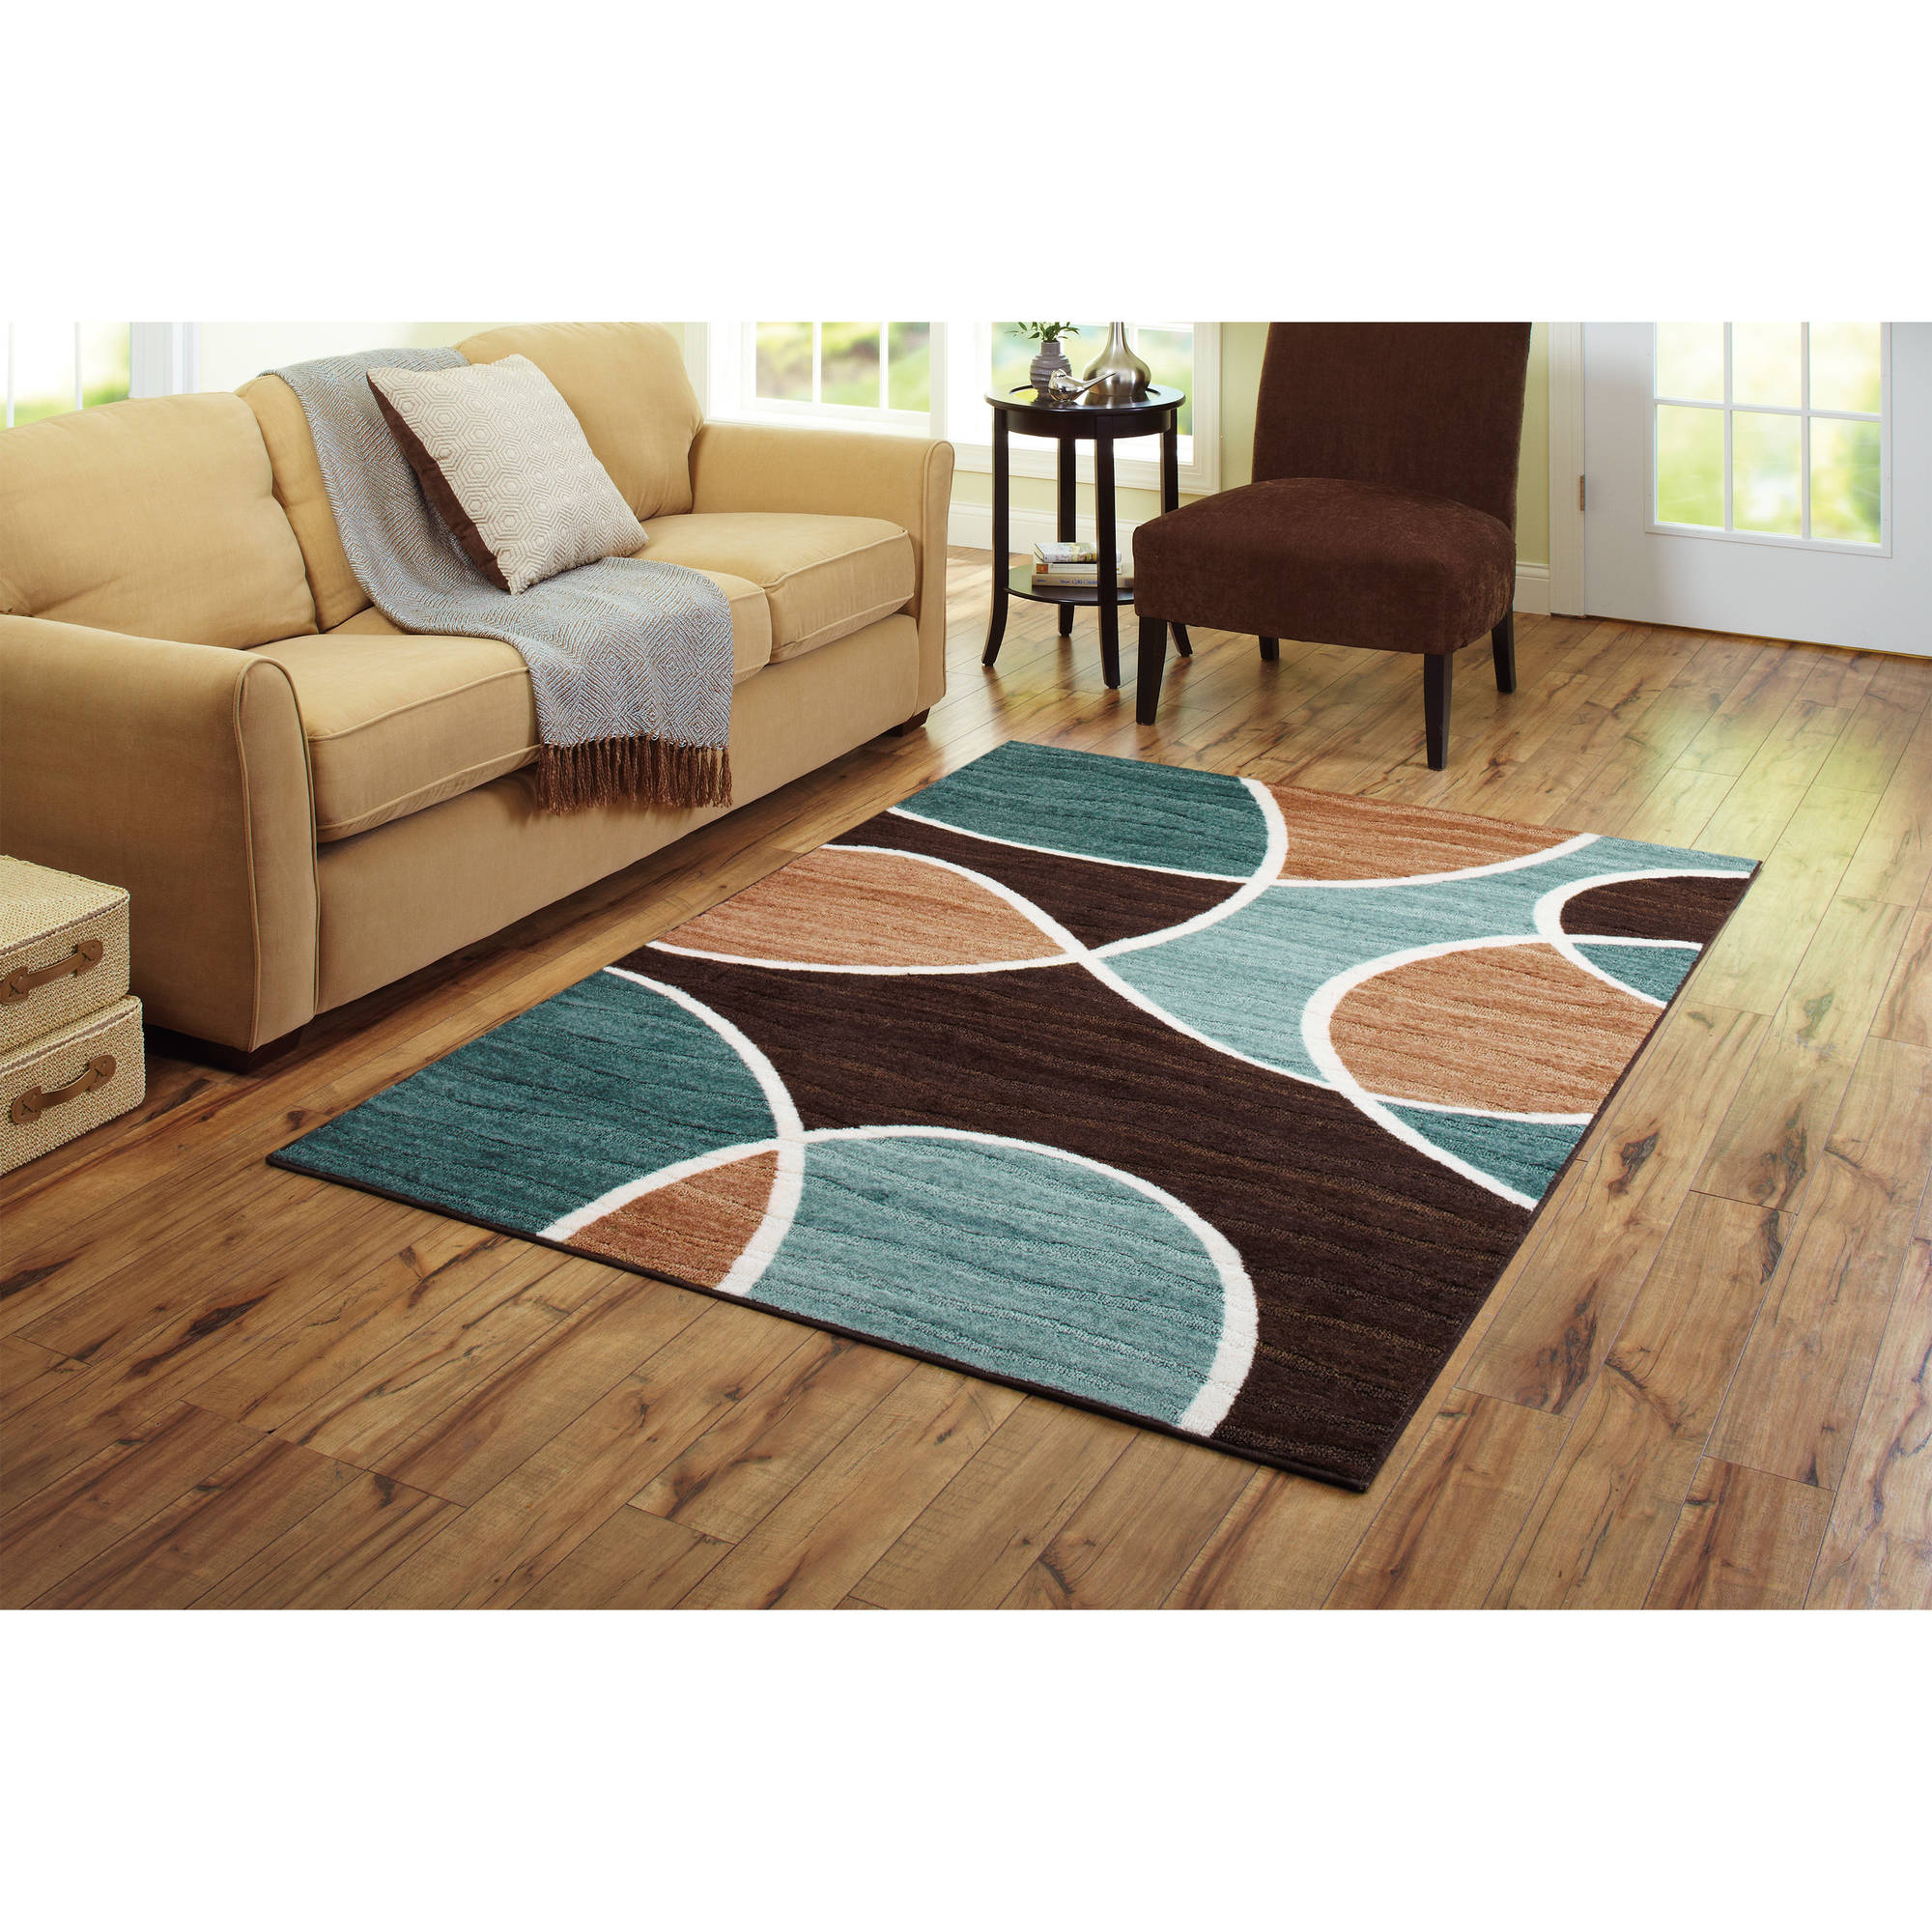 Better Homes and Gardens Geo Waves Area Rug or Runner - Walmart.com